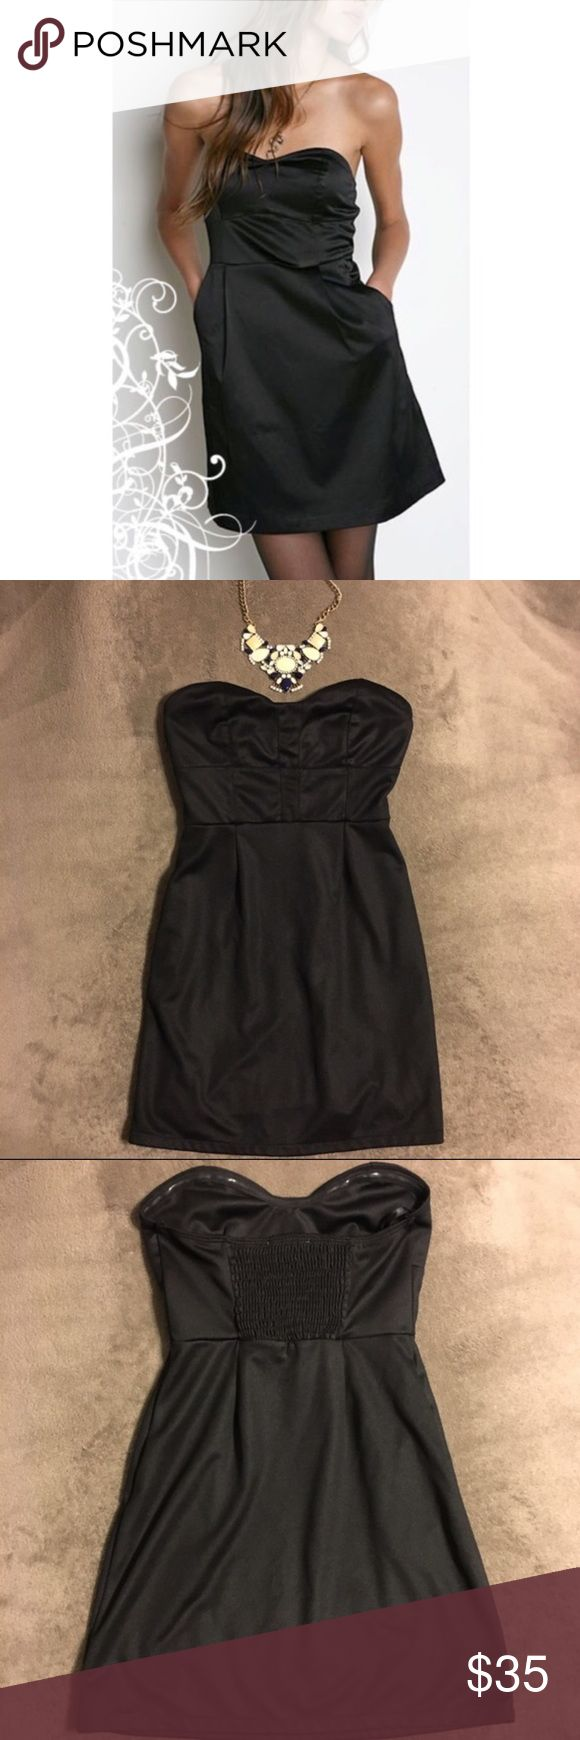 Silence + Noise Strapless Black Dress w/ Pockets Super cute black strapless dress from silence + noise, a brand carried by urban outfitters. worn once - excellent condition. Dress has an elastic back to fit to size, and a pocket on each side. 100% polyester. Necklace pictured is not included or for sale. Perfect dress for any occasion! Urban Outfitters Dresses Strapless